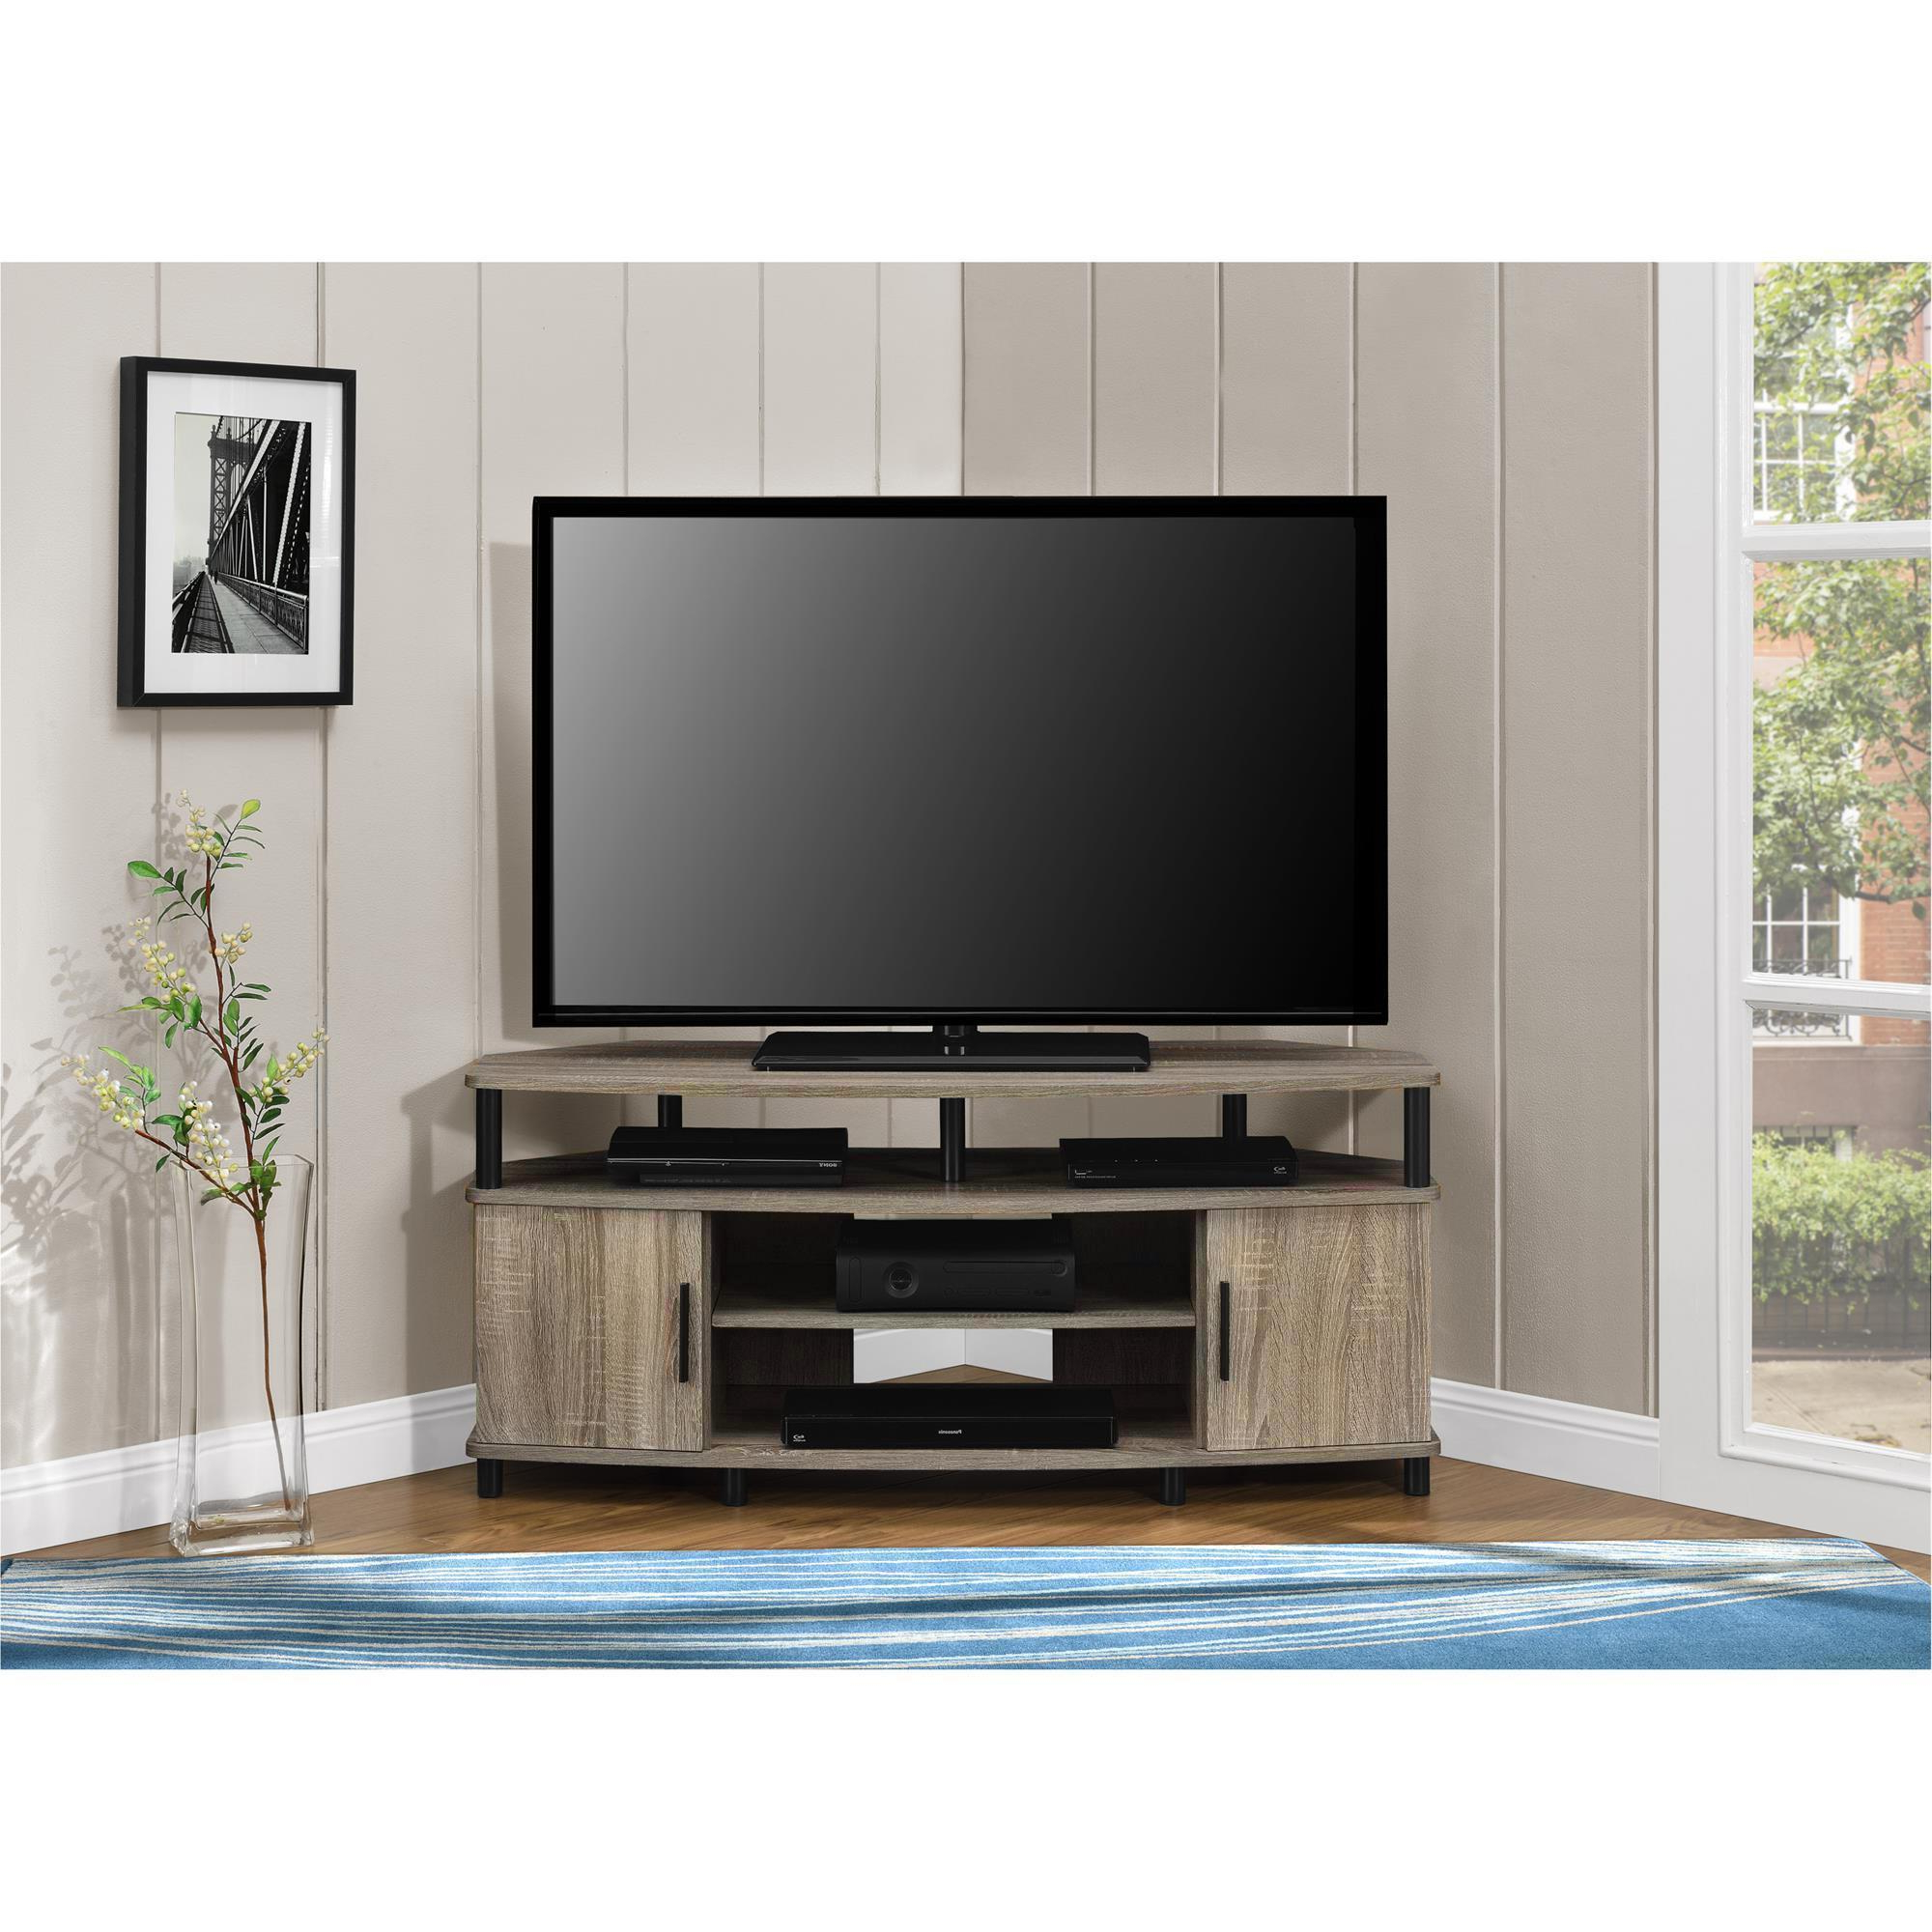 Widely Used Shop Ameriwood Home Carson 50 Inch Sonoma Oak Corner Tv Stand – Free Intended For Unique Corner Tv Stands (View 18 of 20)